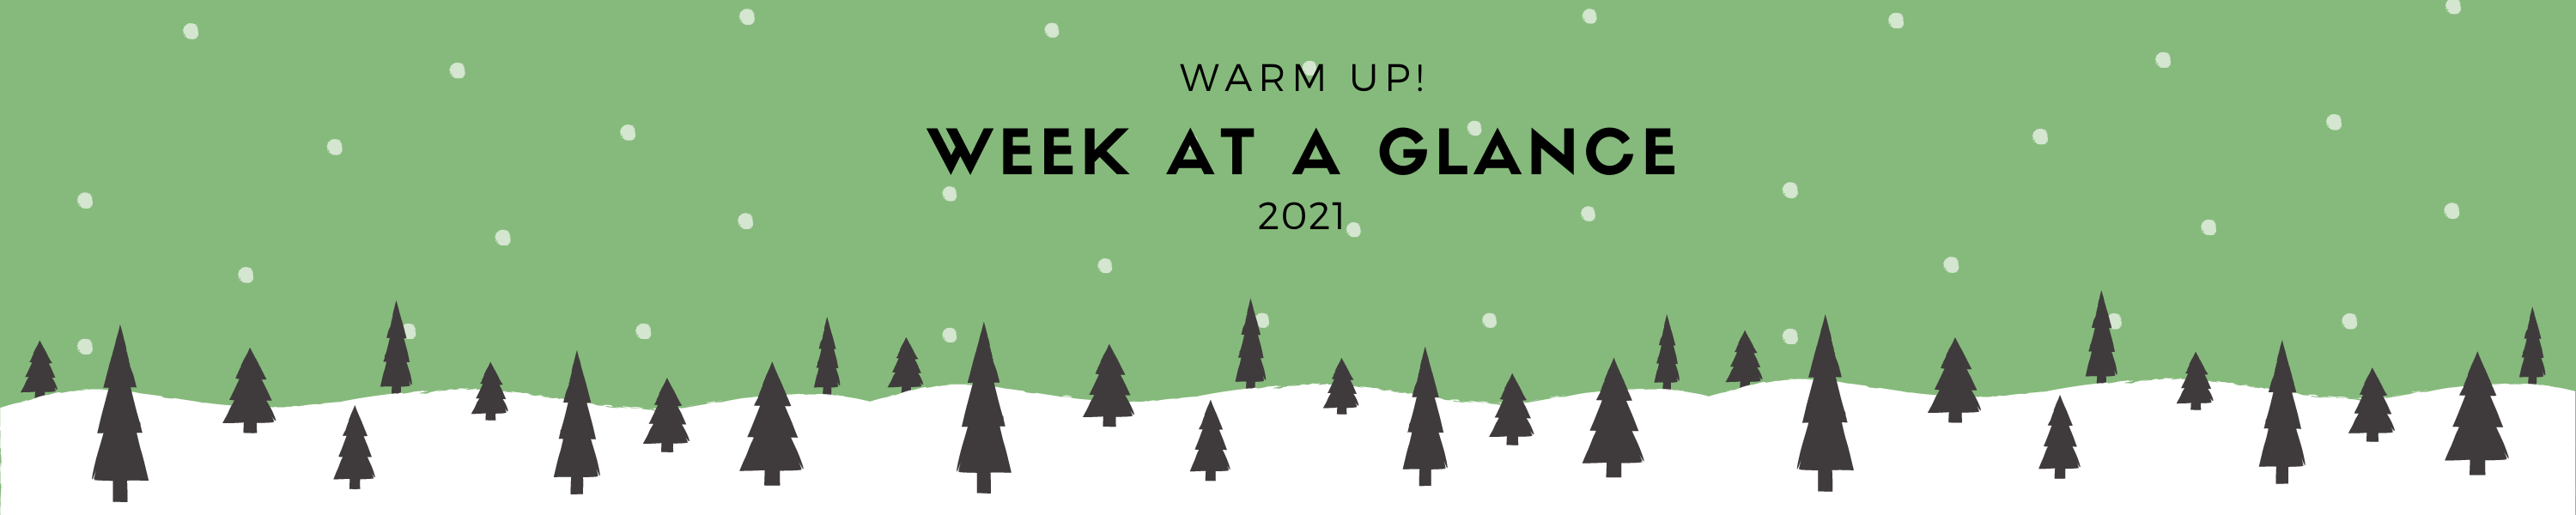 Week at a Glance banner